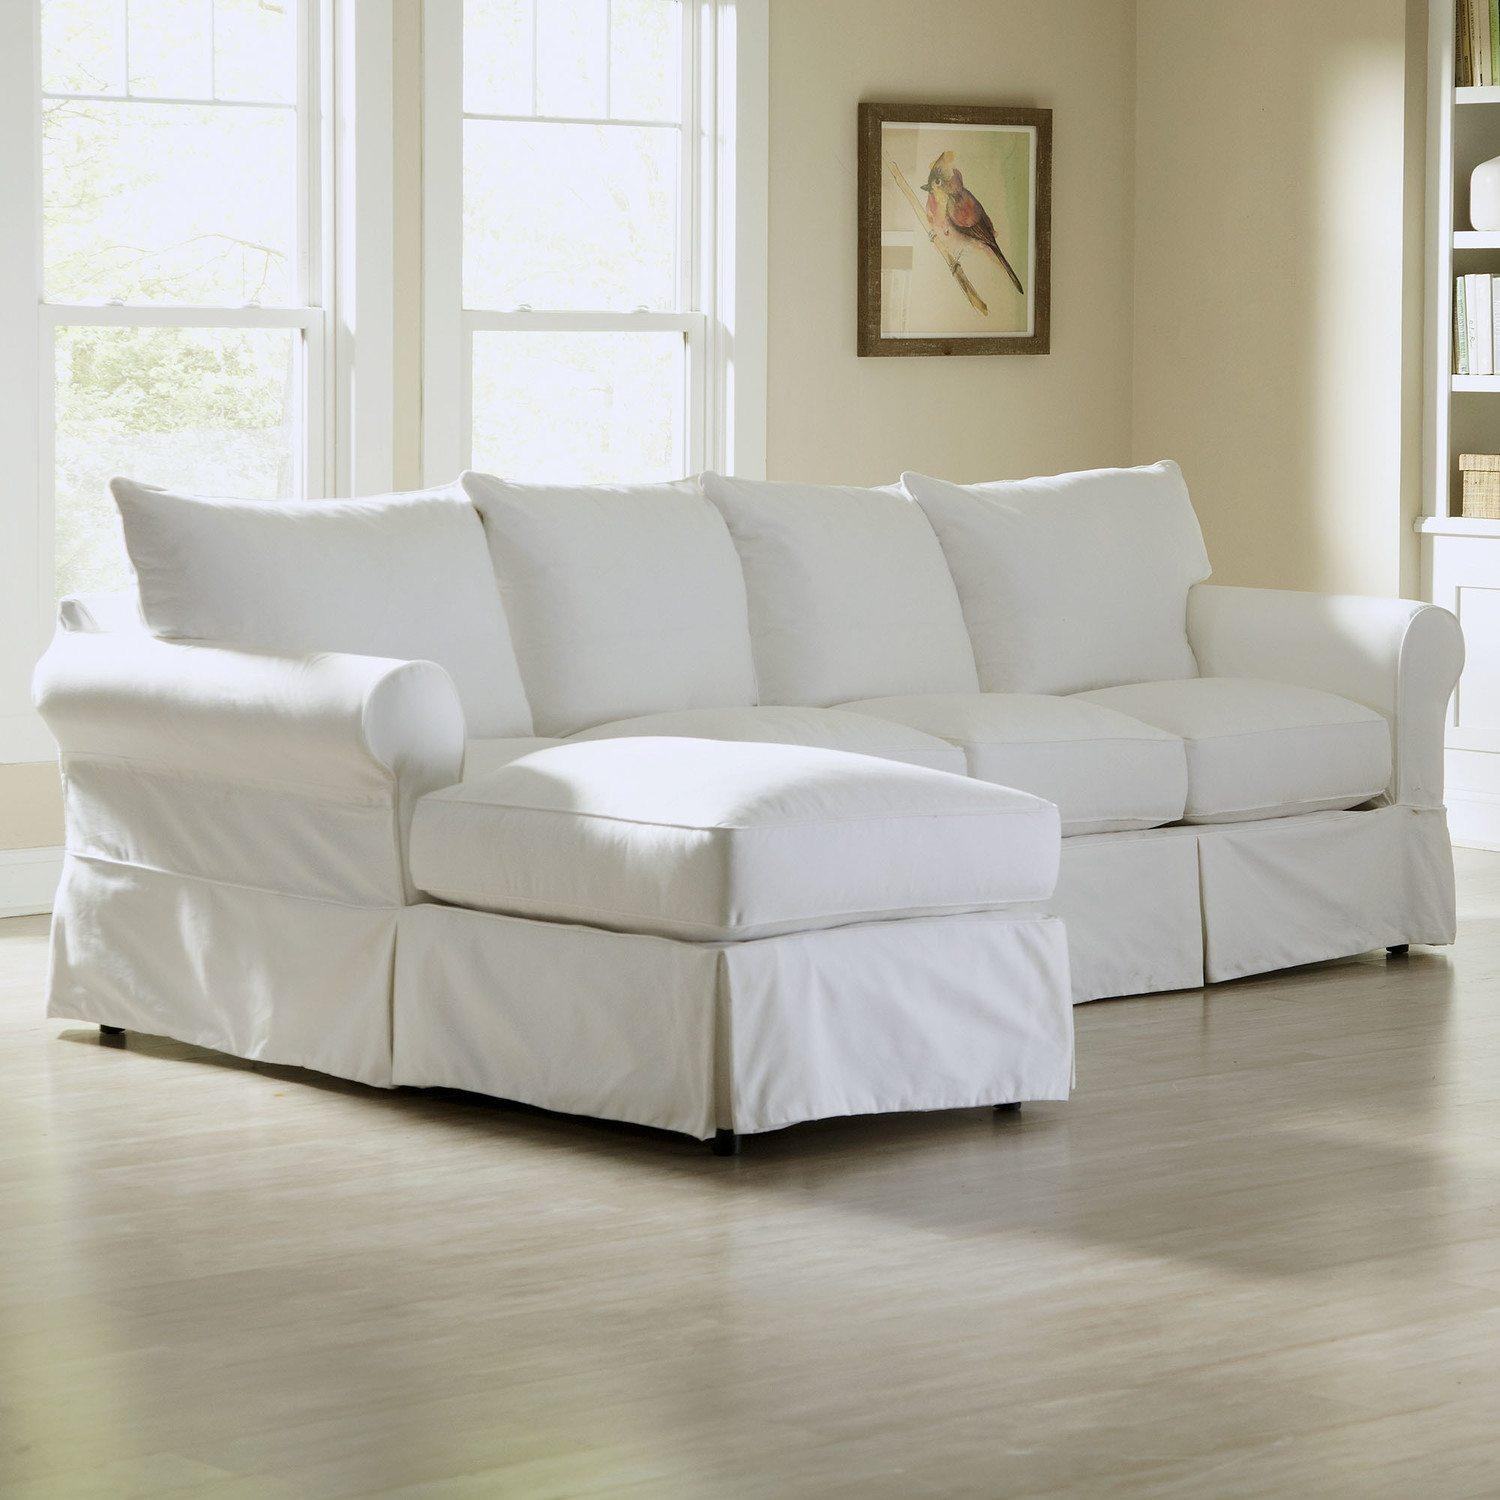 Featured Image of Down Sectional Sofa